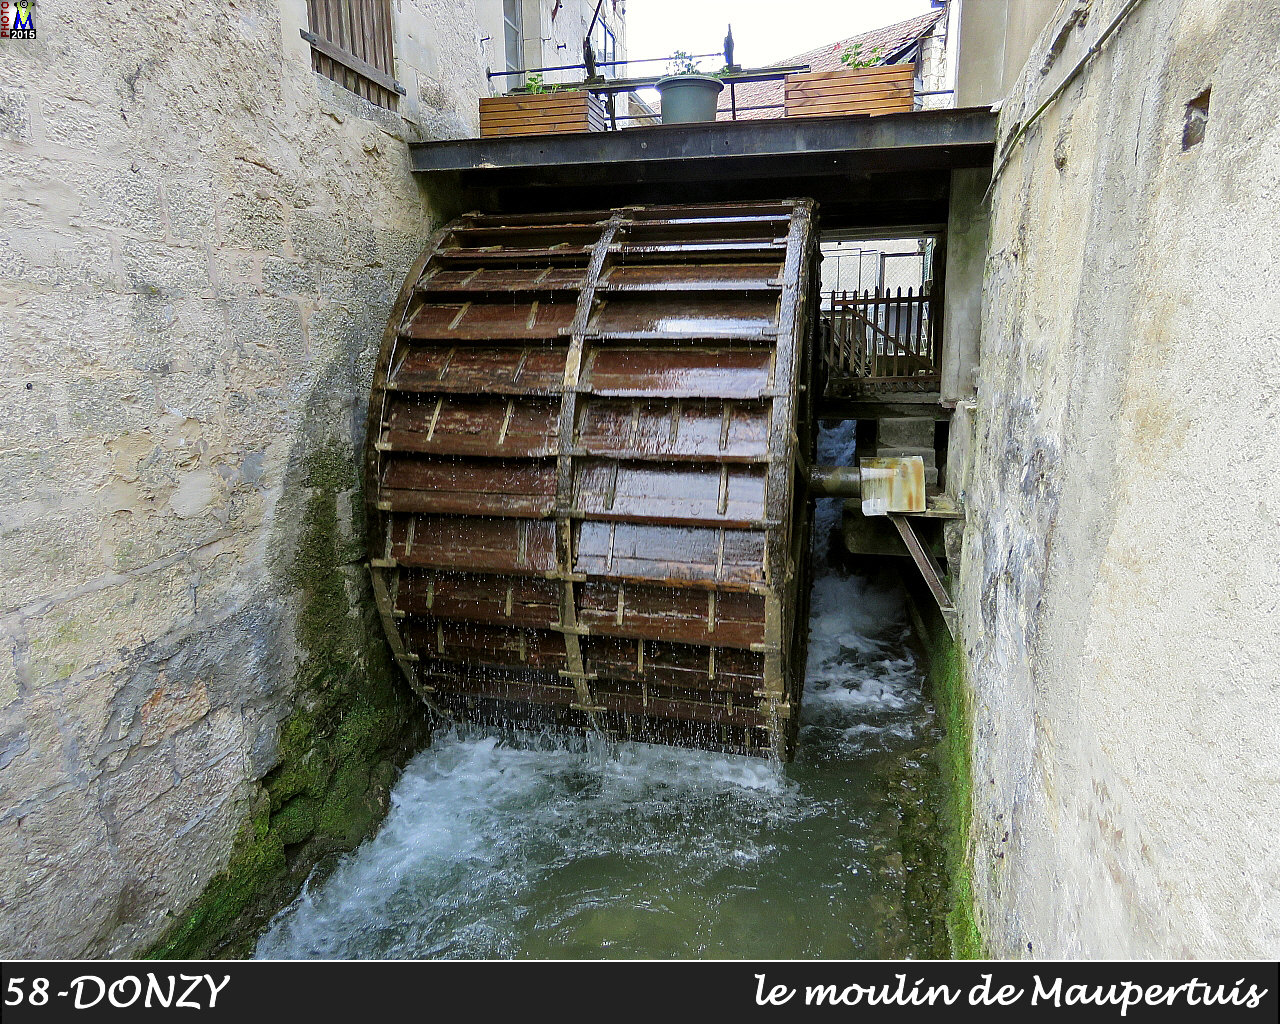 58DONZY_moulin_102.jpg